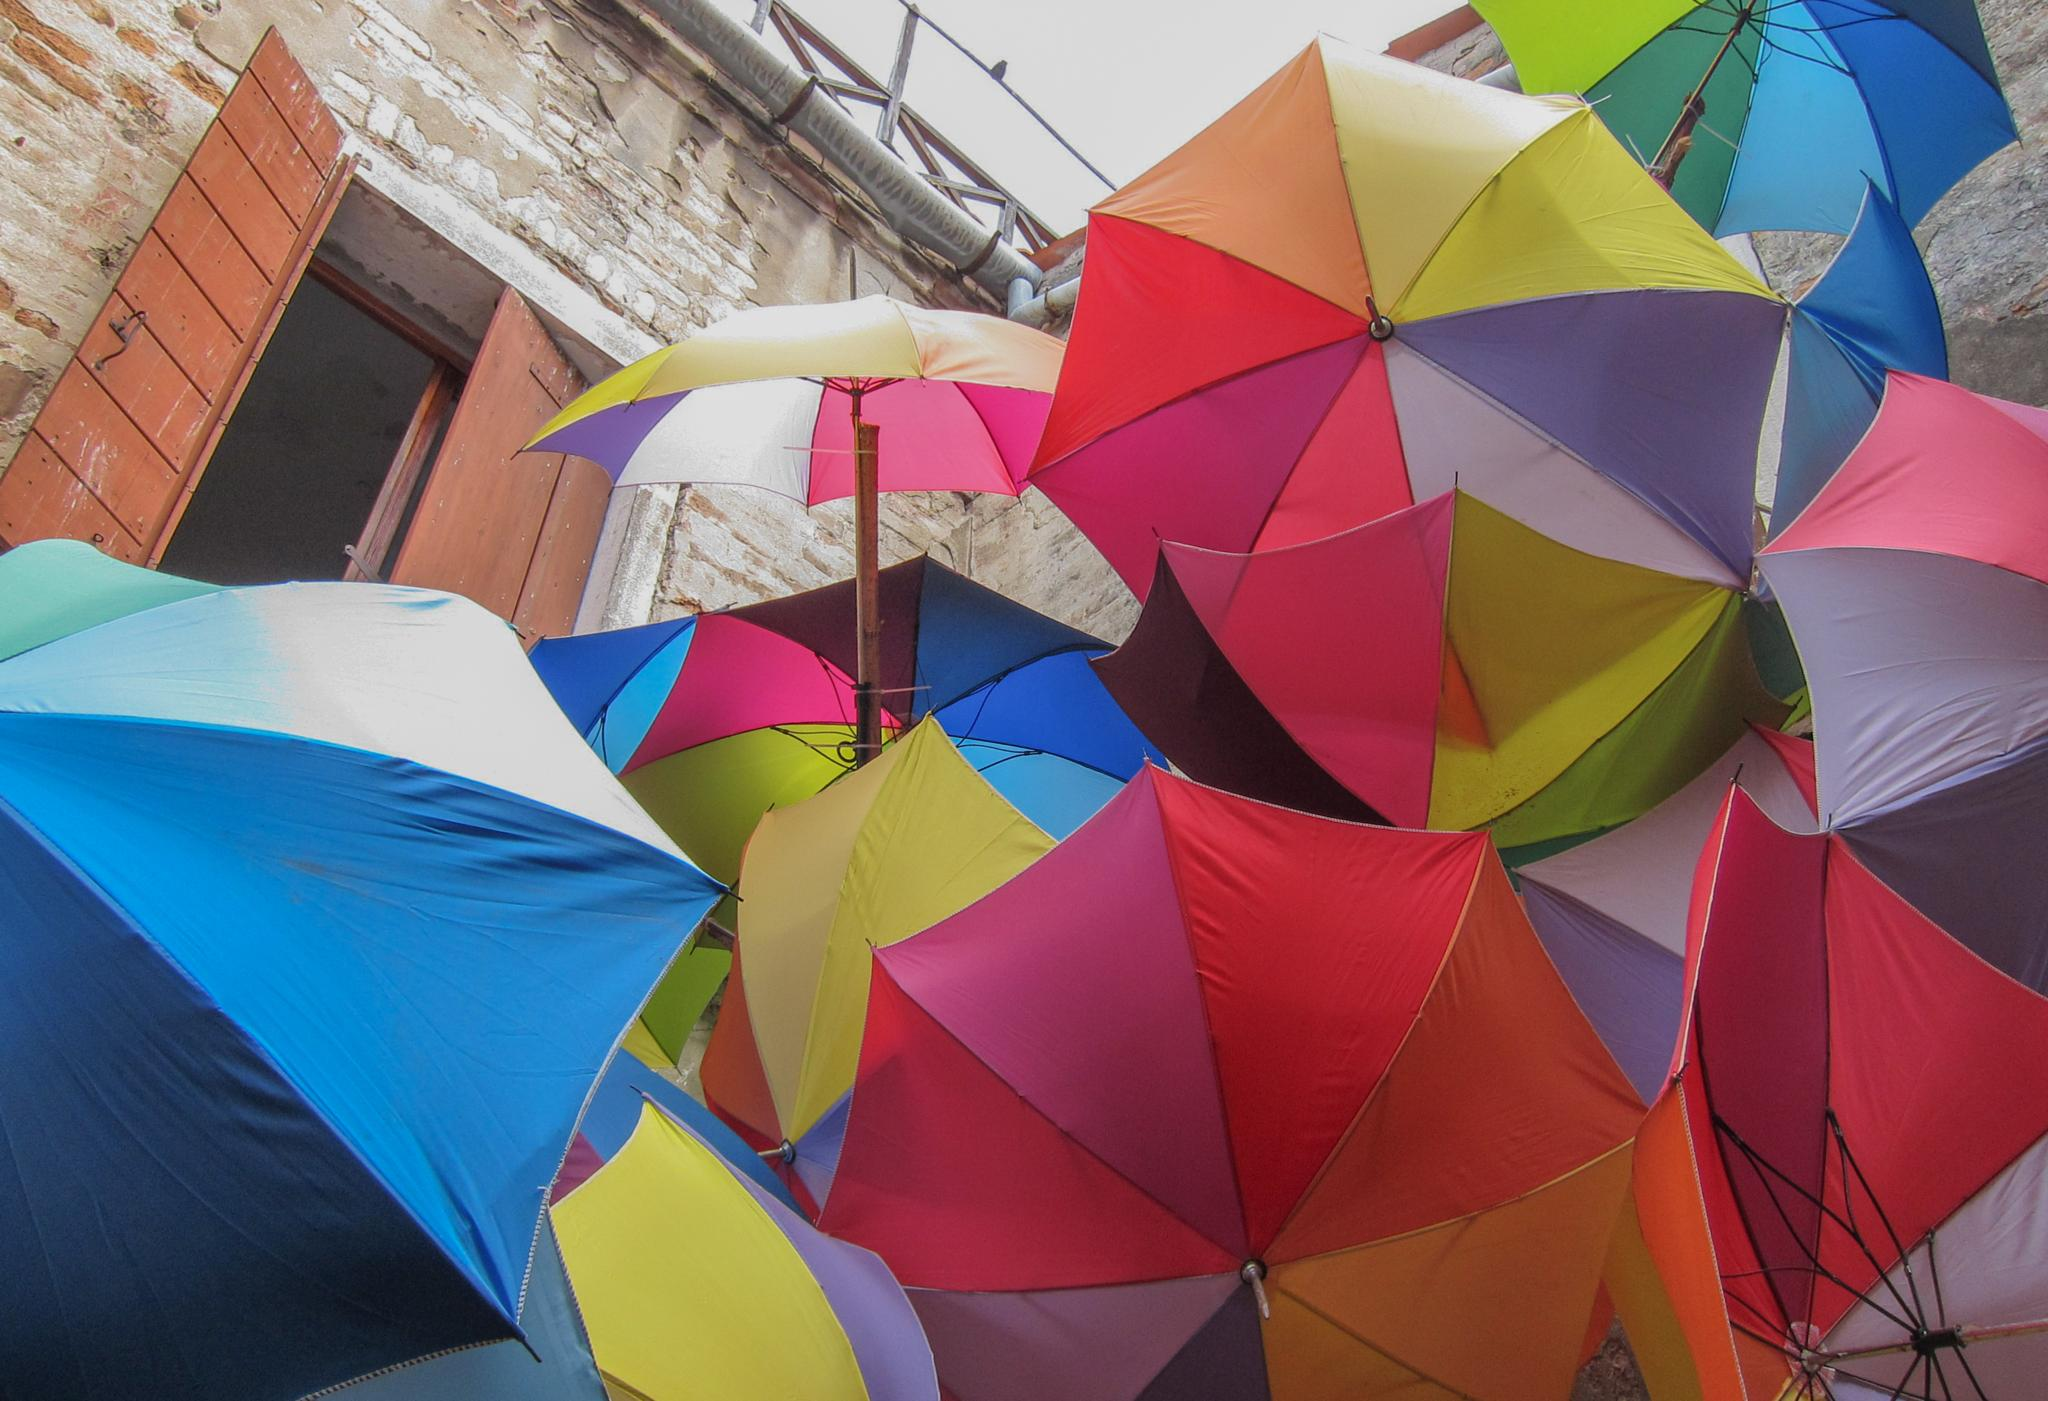 Umbrellas Up by Carolyn Chase